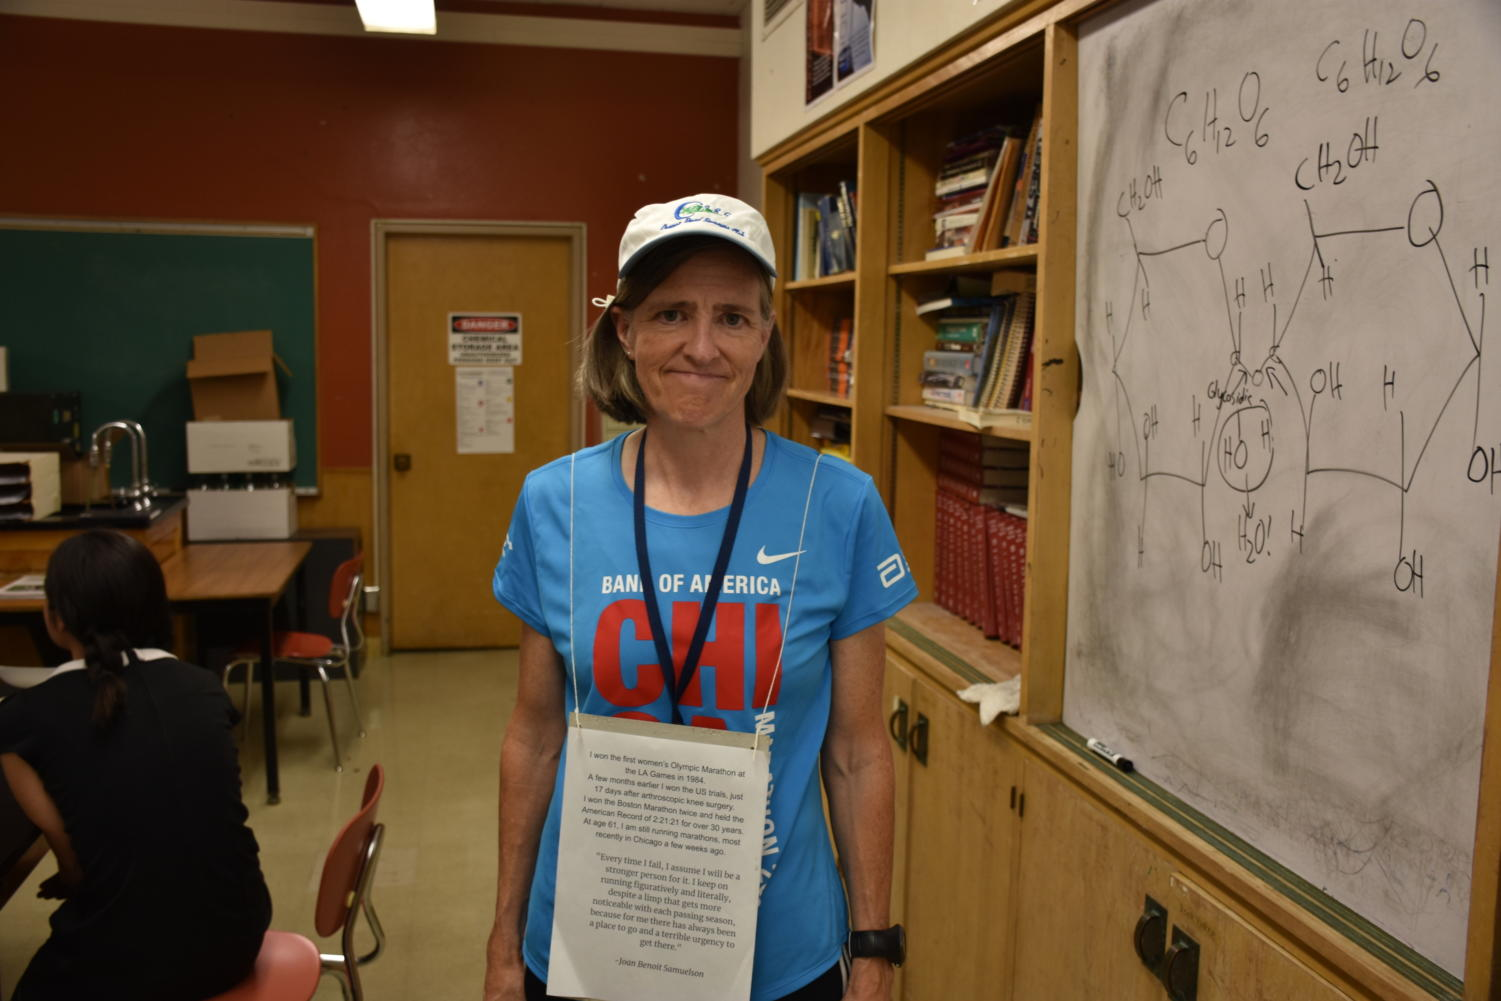 Maureen Kenny poses in her Halloween costume as Joan Benoit Samuelson, the first ever women's Oylmpic games marathon champion